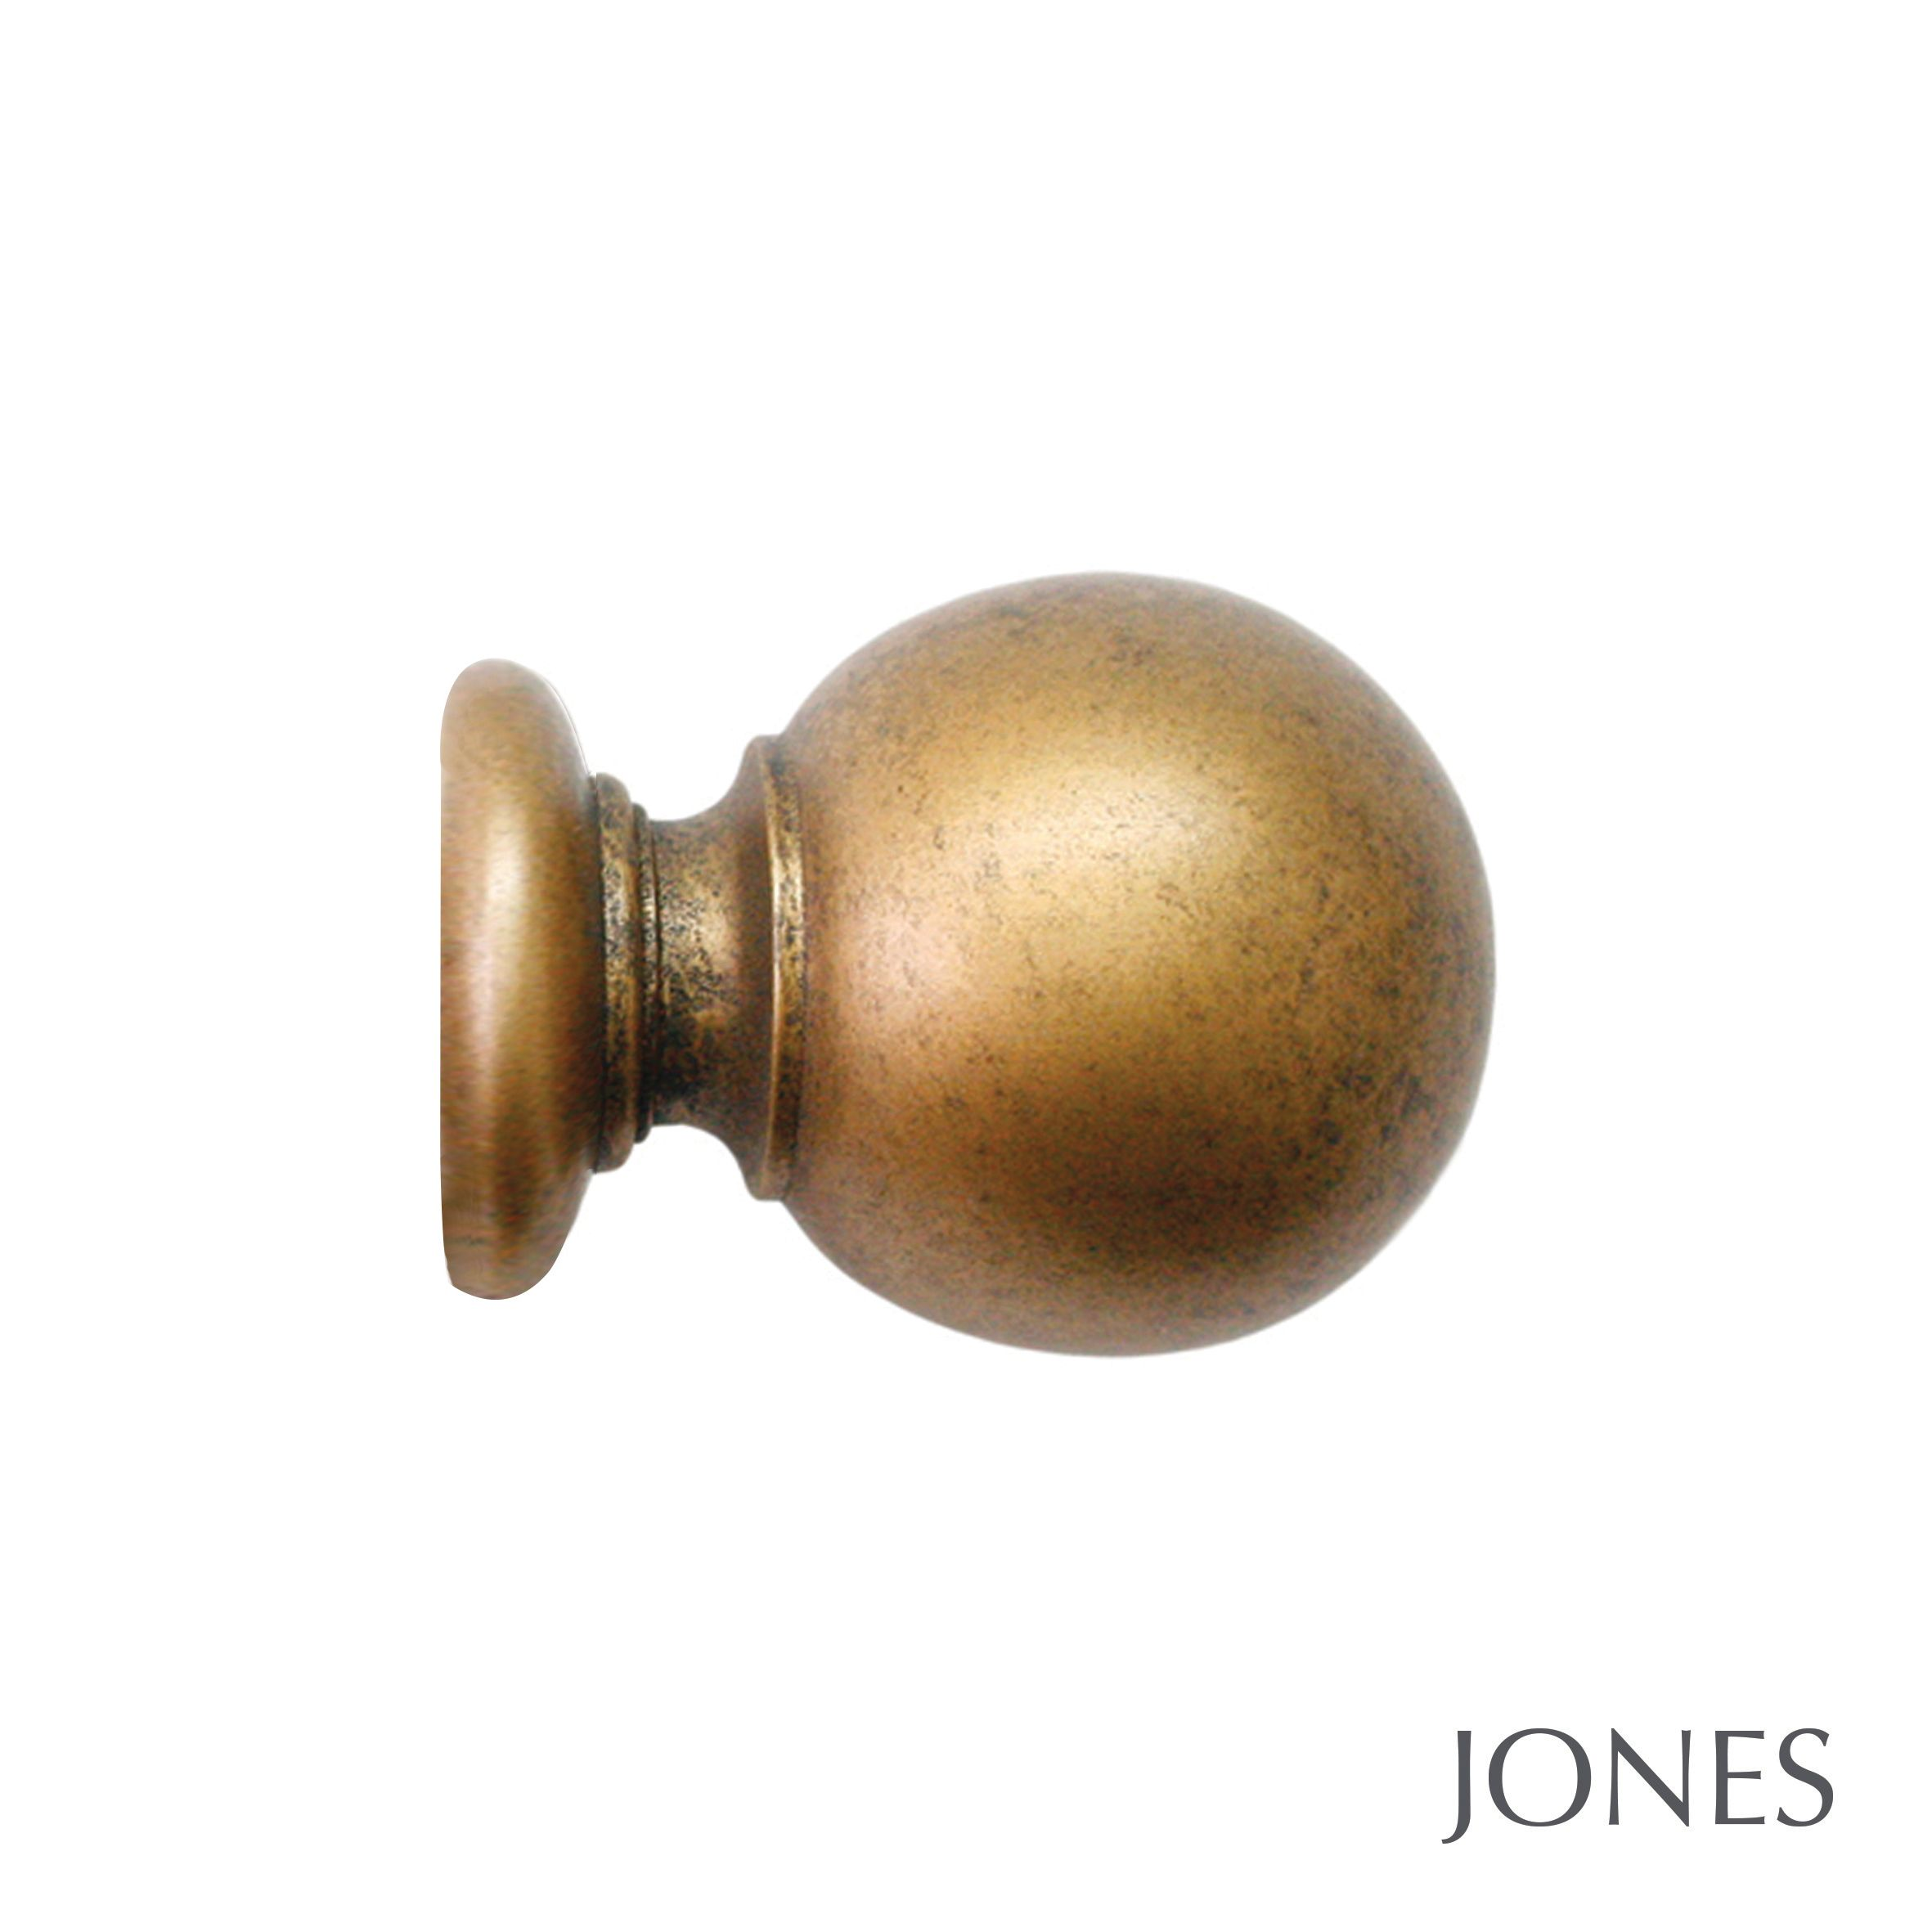 50mm Jones Florentine Ball Finial antique gold